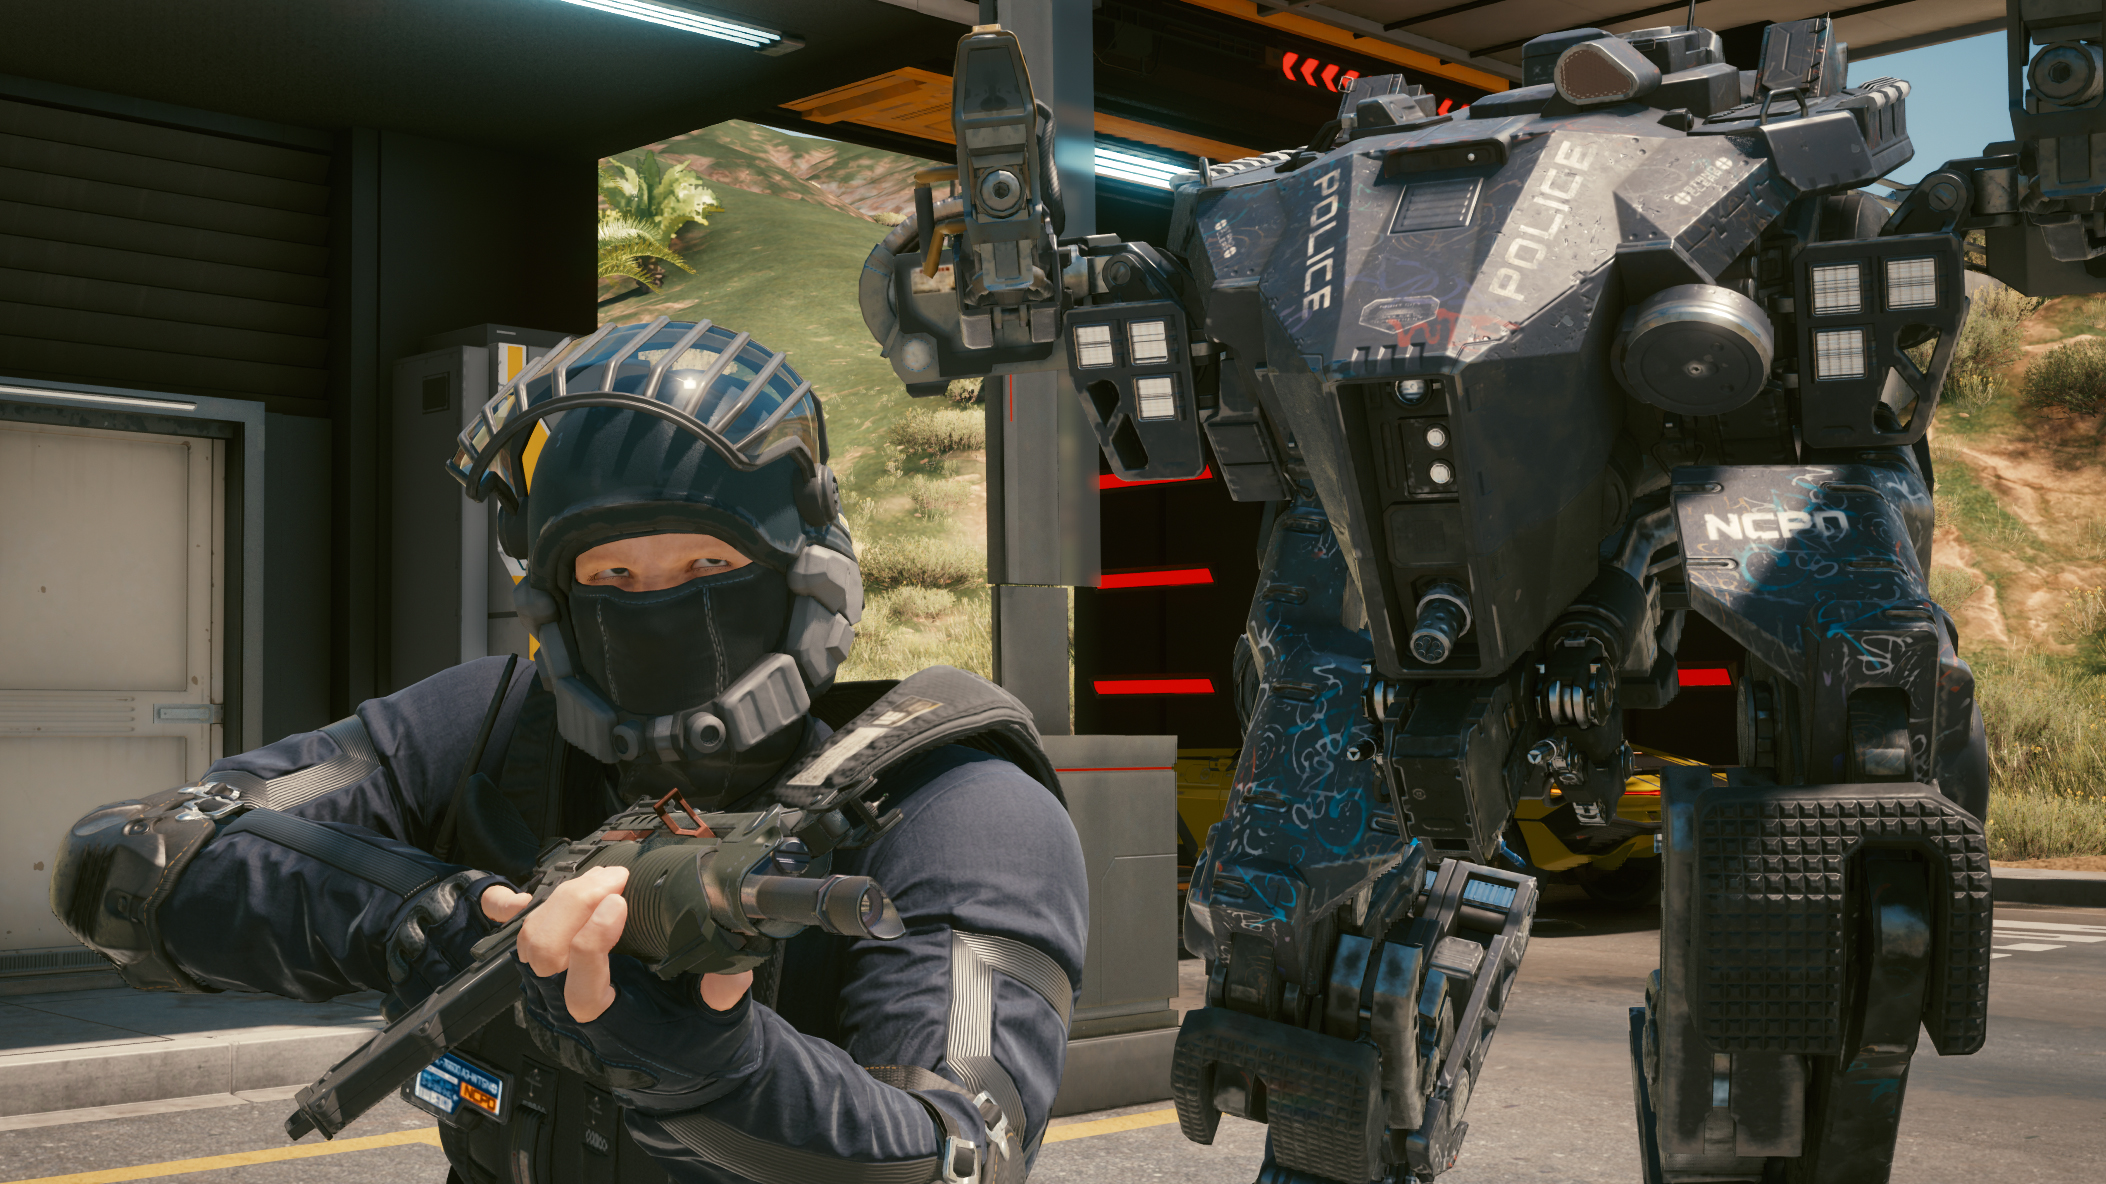 Cyberpunk 2077's next patch will slow police response, let you remap dodge